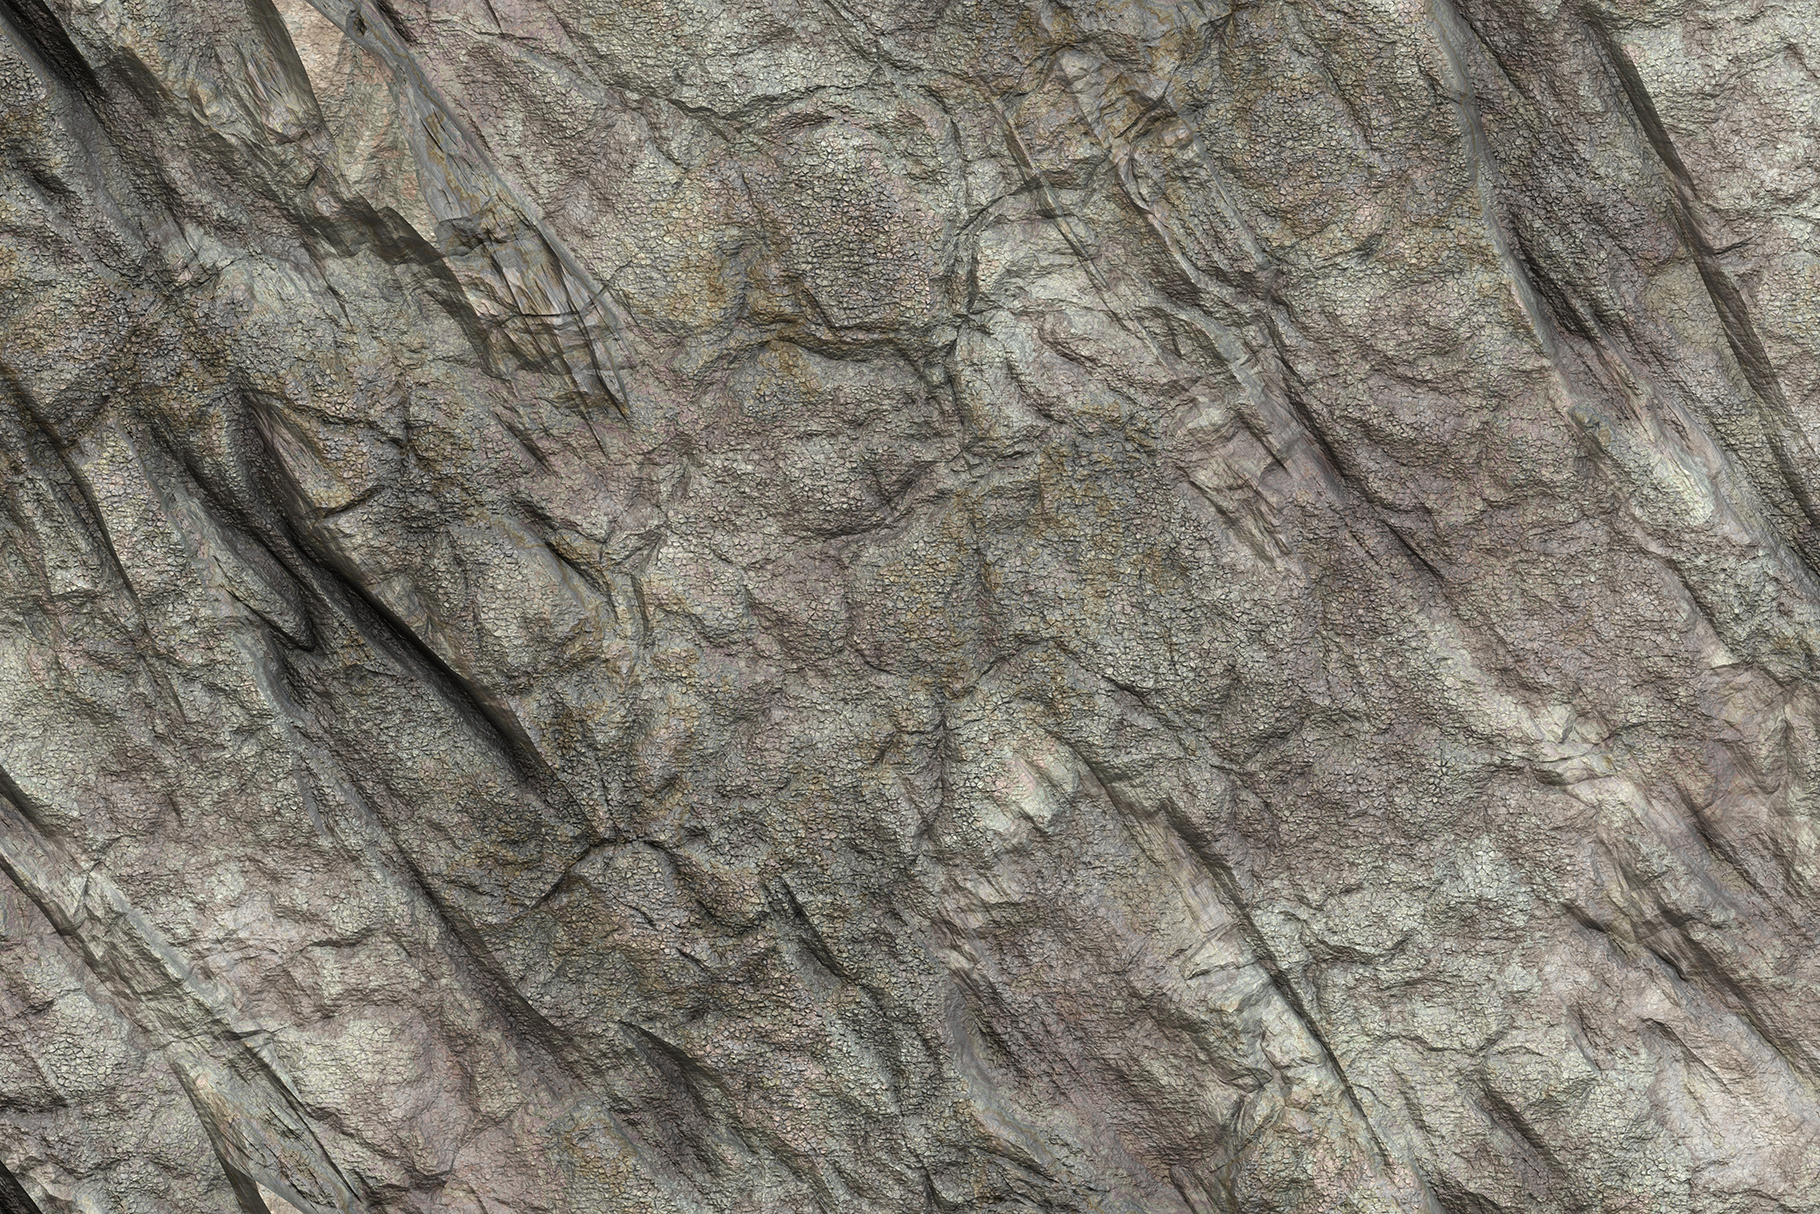 10 Rocky Cliff Background Textures – Textures.World